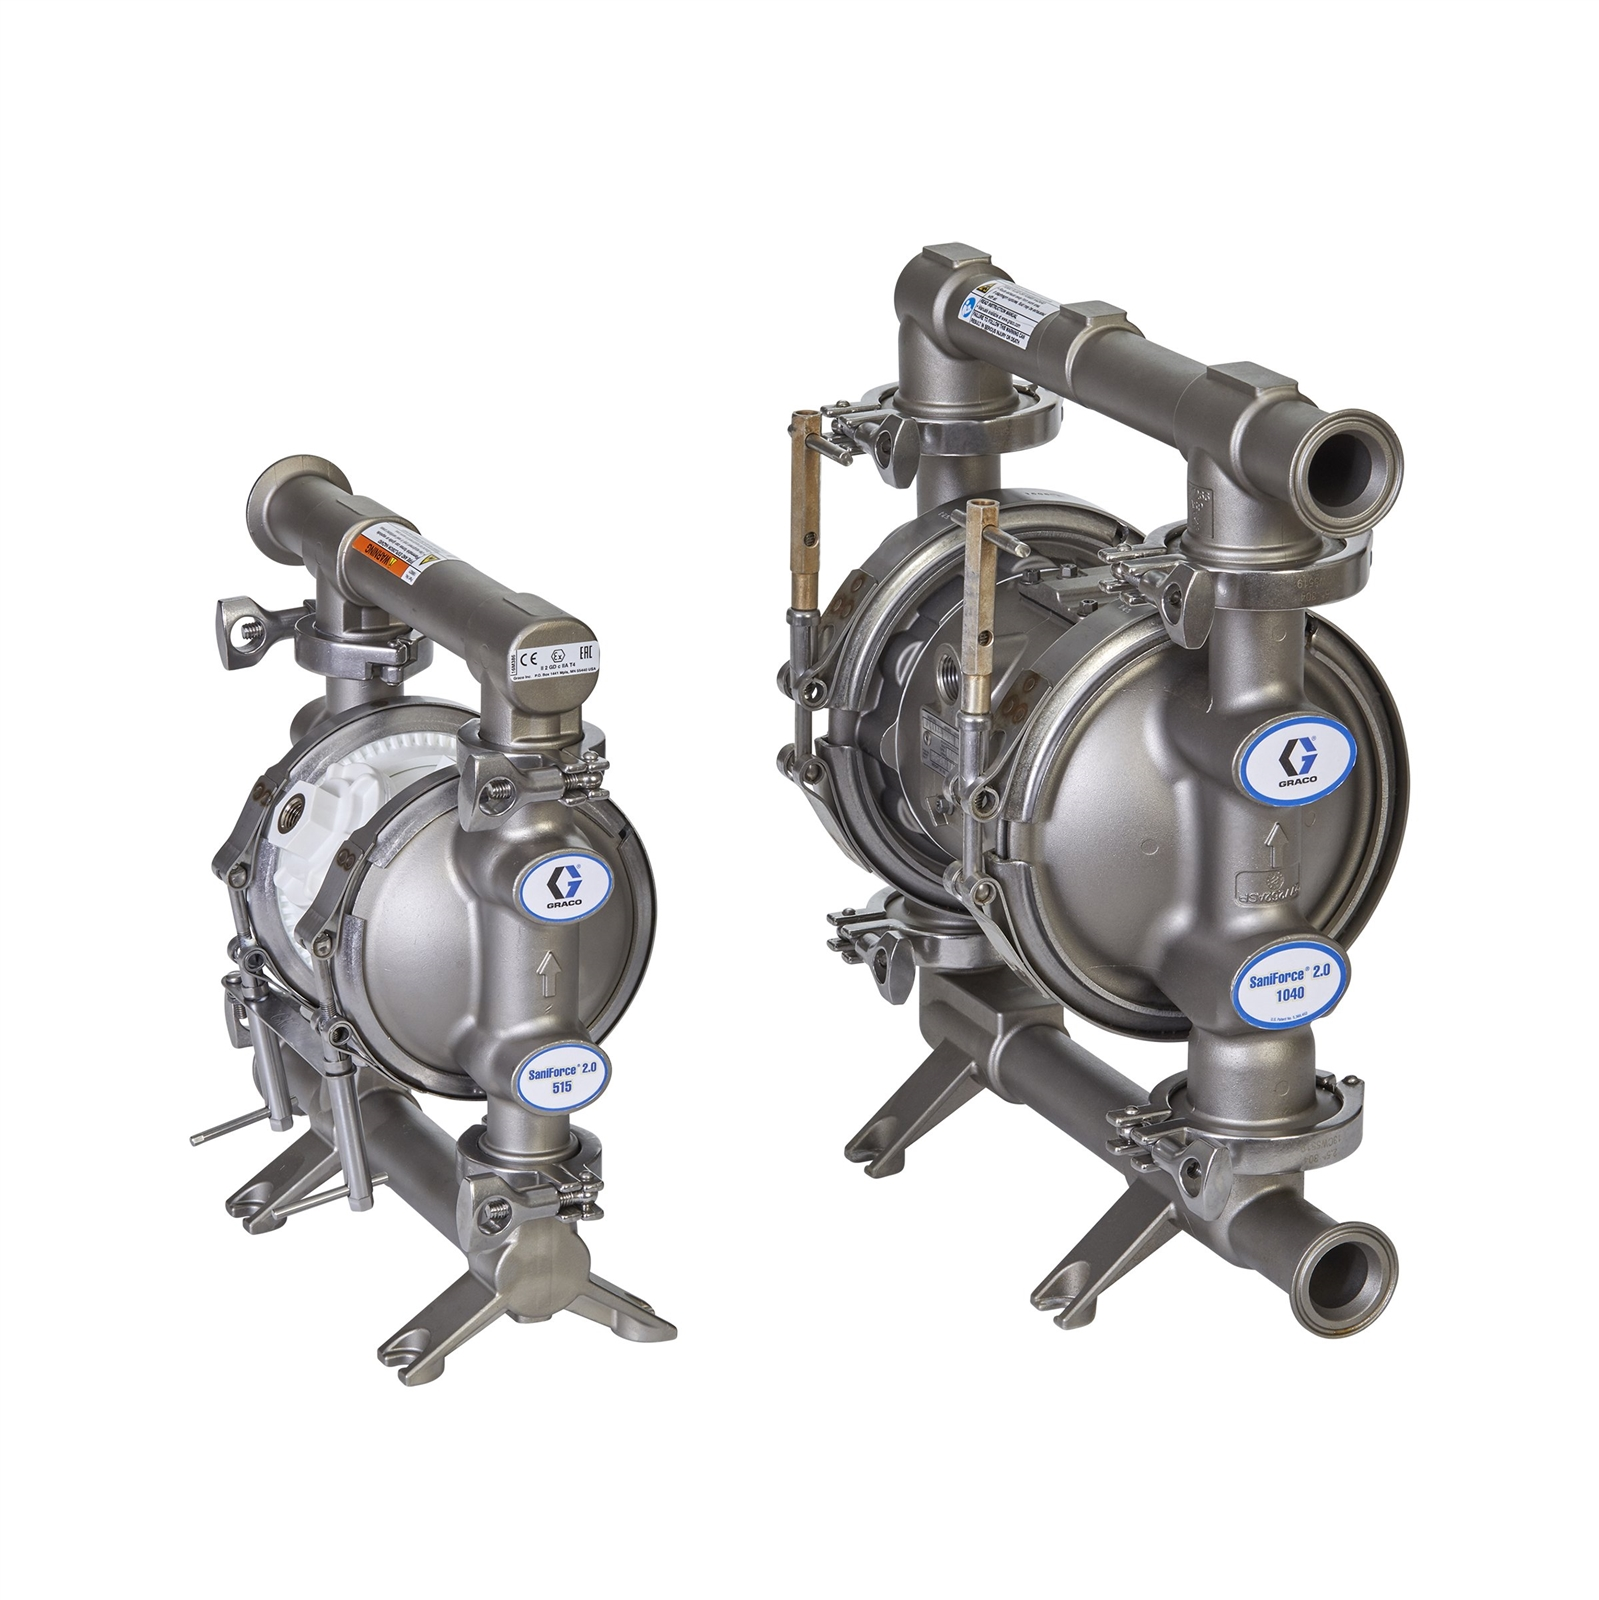 Graco SaniForce FD1111 Stainless Steel Sanitary Double Diaphragm Pump 1 40 GPM